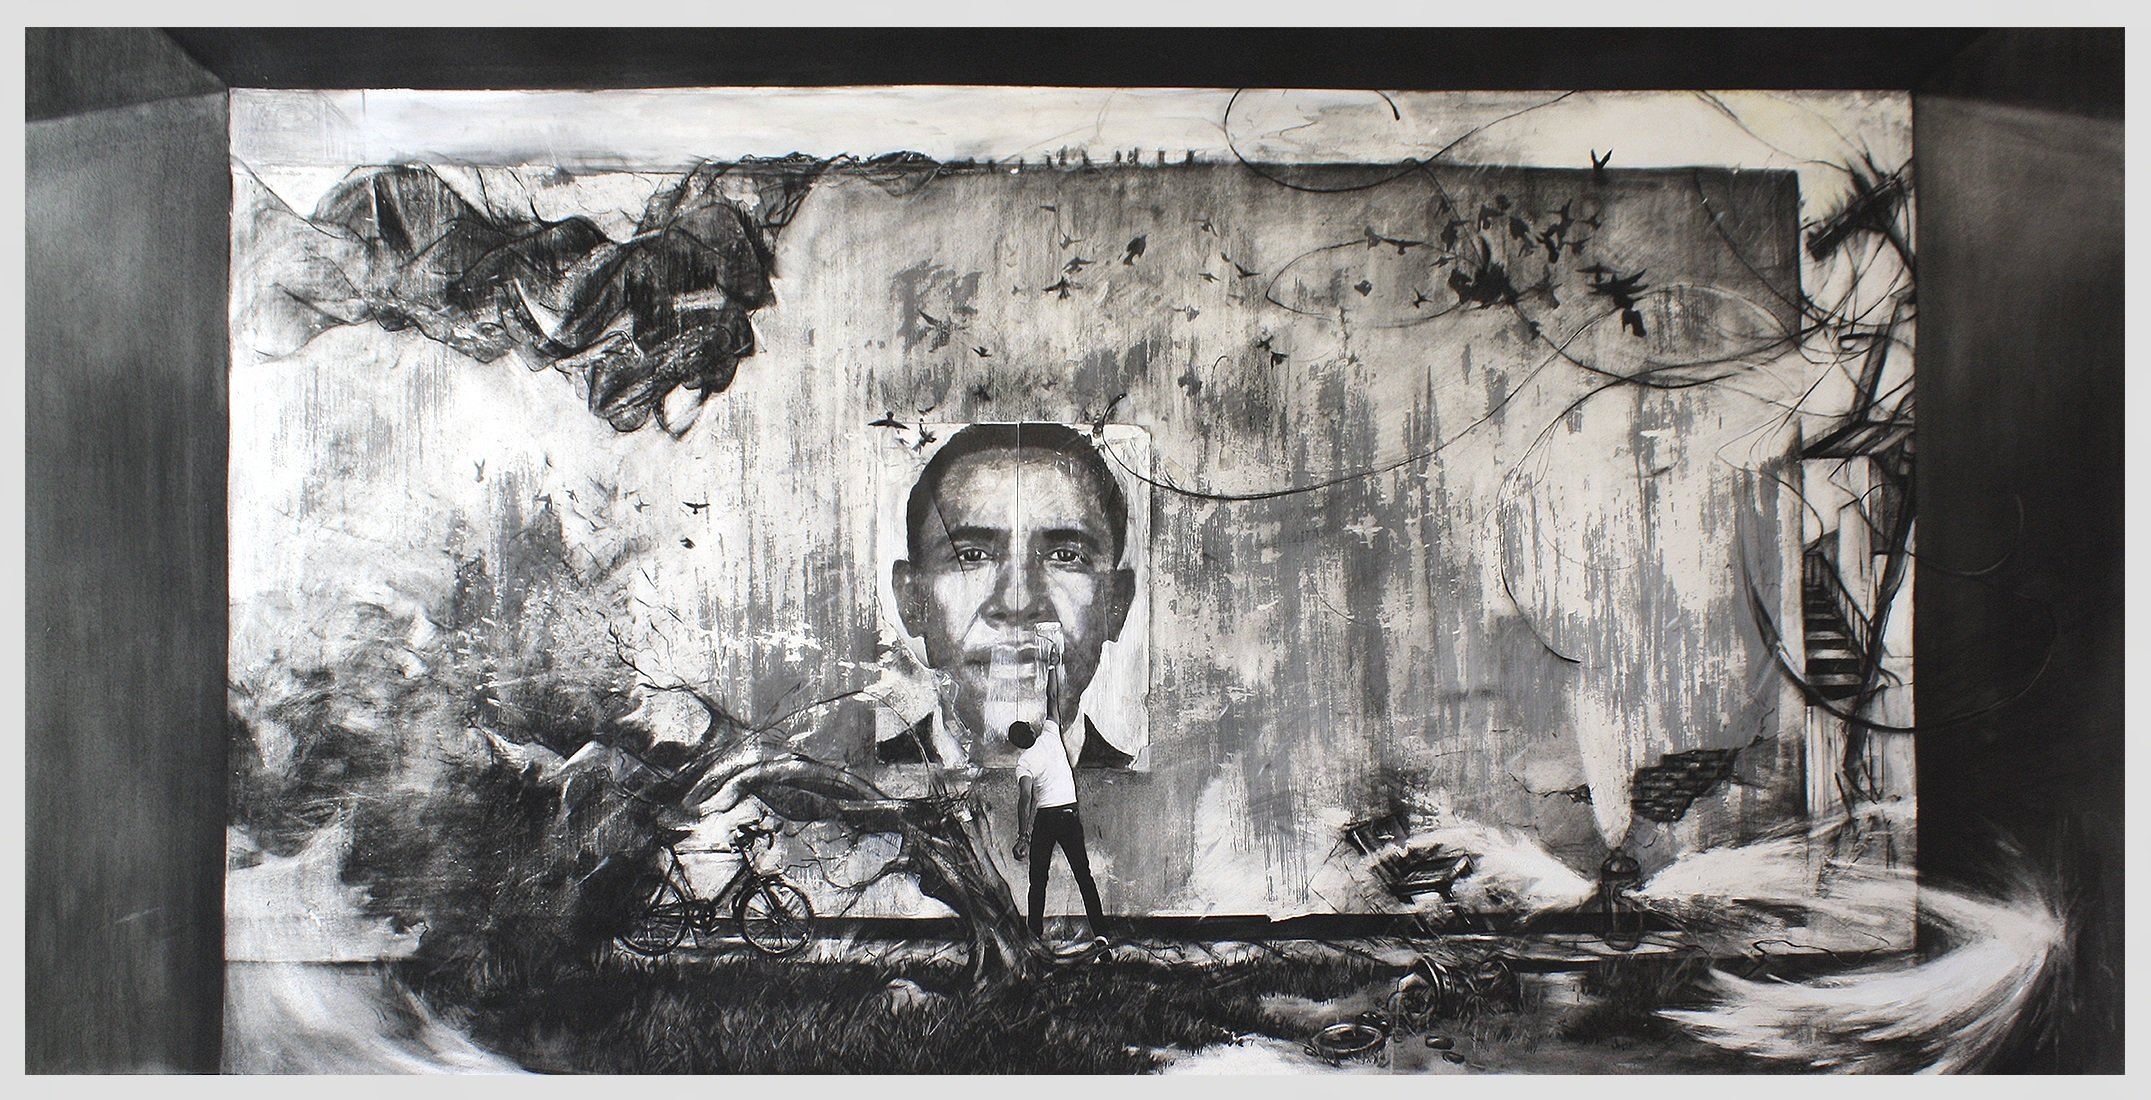 """McKinley Wallace III, Ambition, (2012), 42"""" x 65"""", Charcoal, Oil and Gesso on Paper. Image courtesy of the artist."""